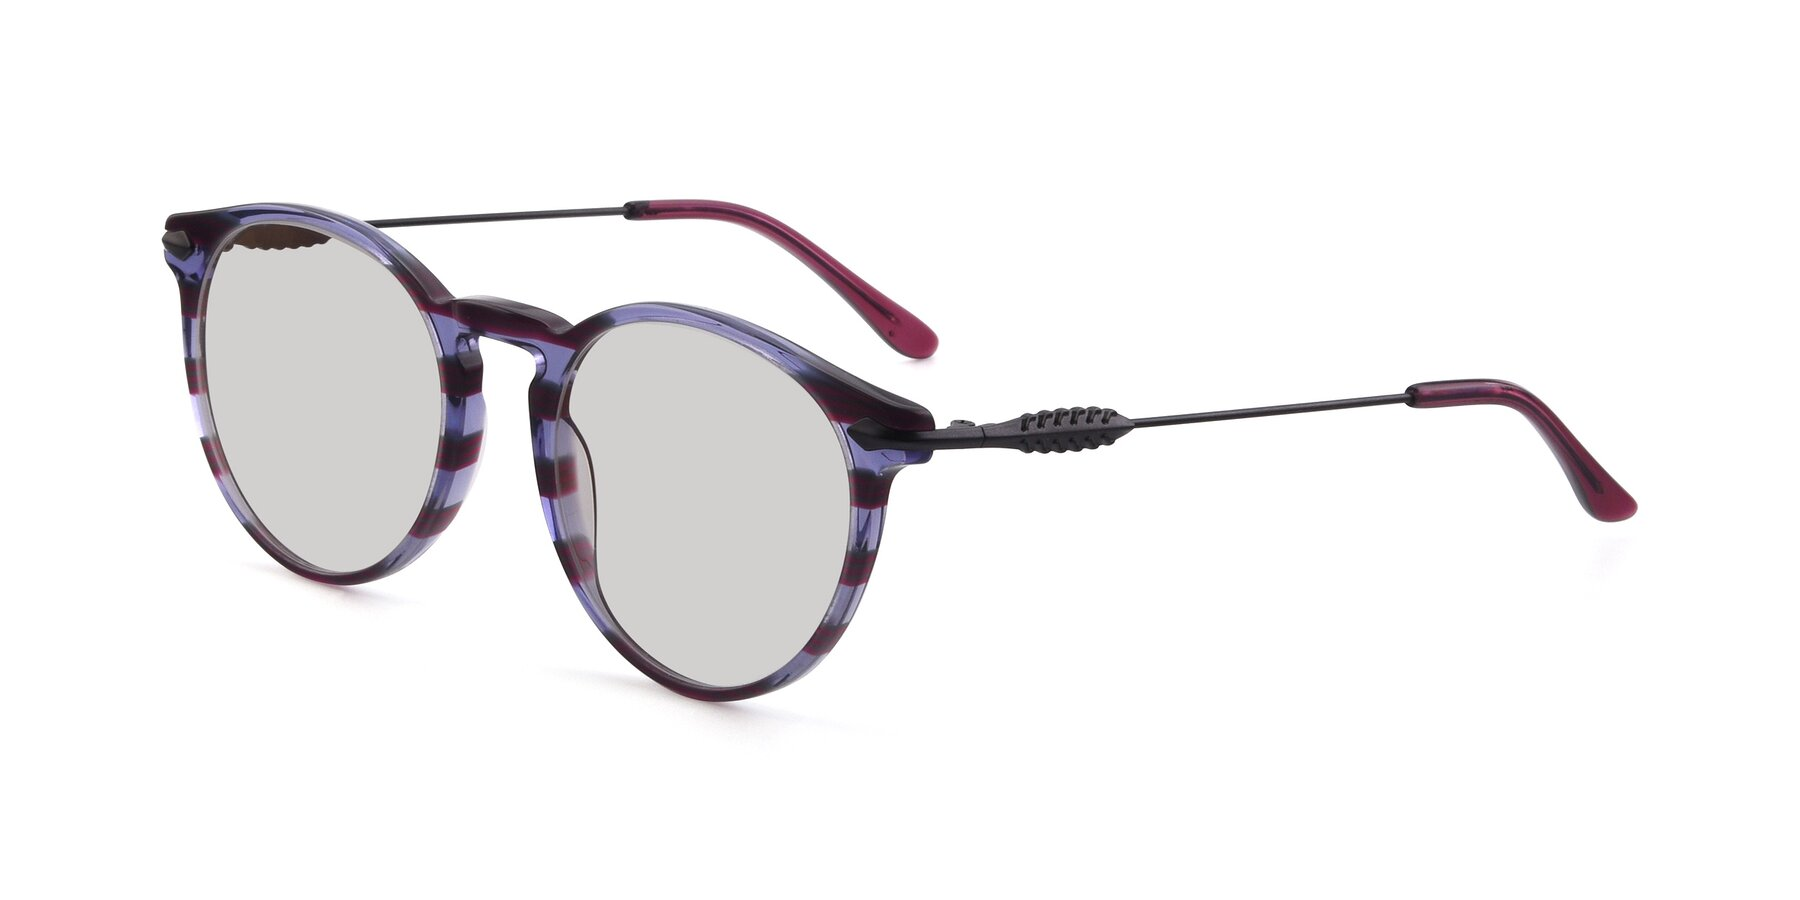 Angle of 17660 in Stripe Purple with Light Gray Tinted Lenses